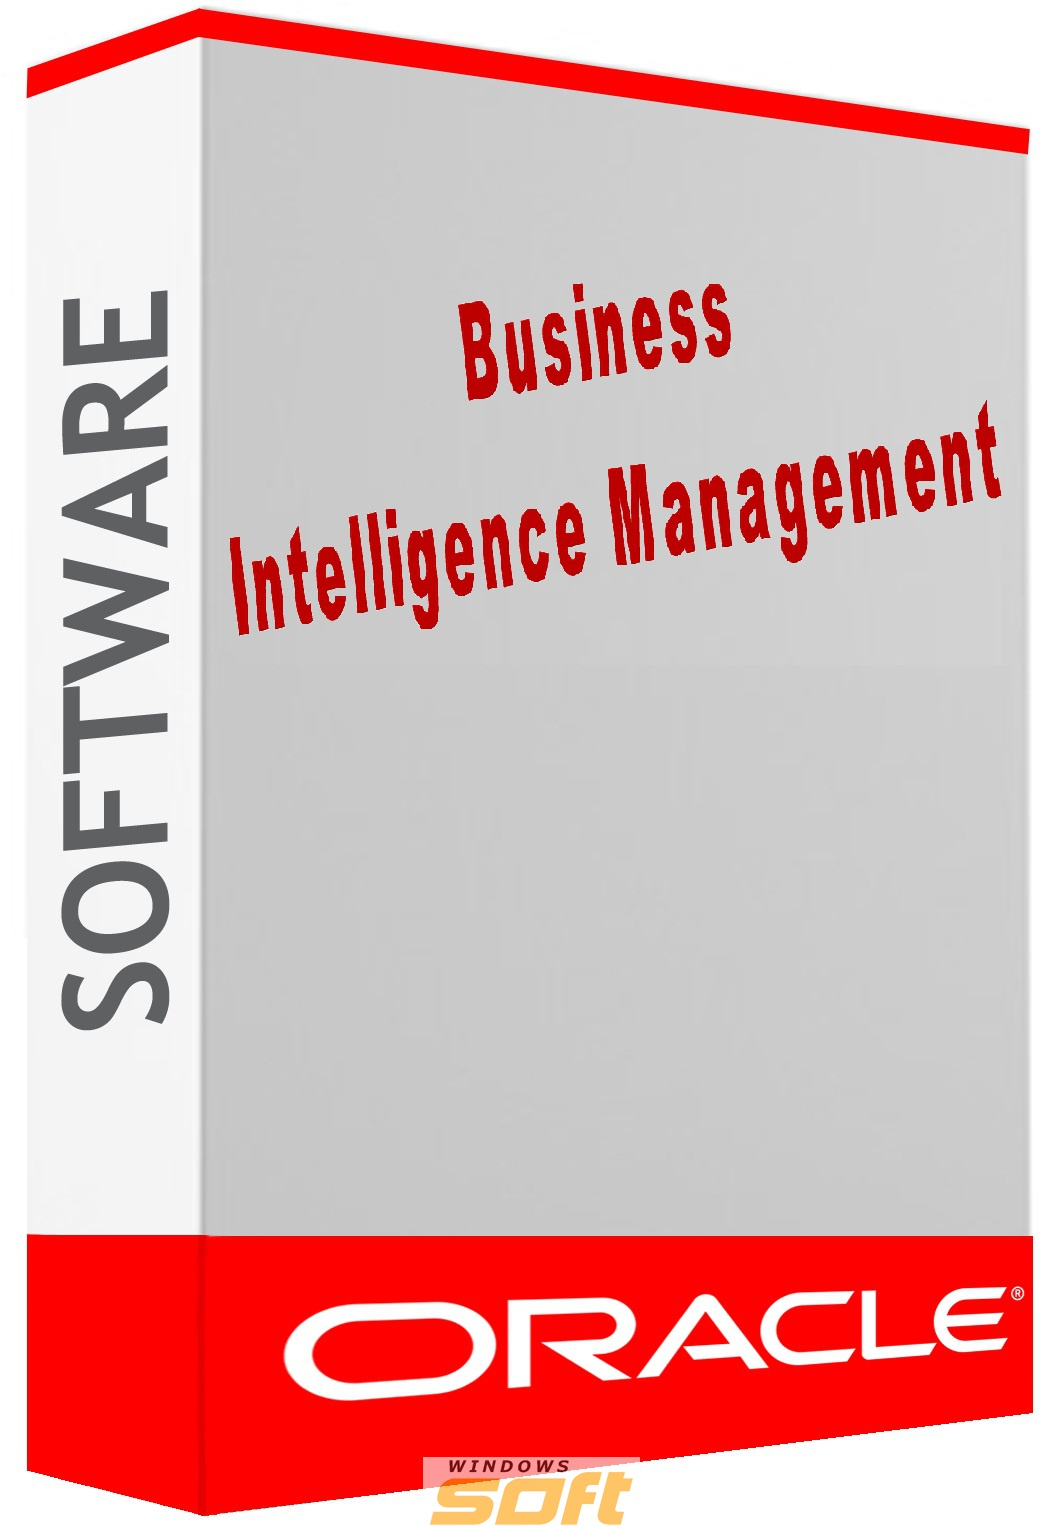 ������ Business Intelligence Management Pack Named User Plus 108-704-ORACLE-SL �� ��������� ����